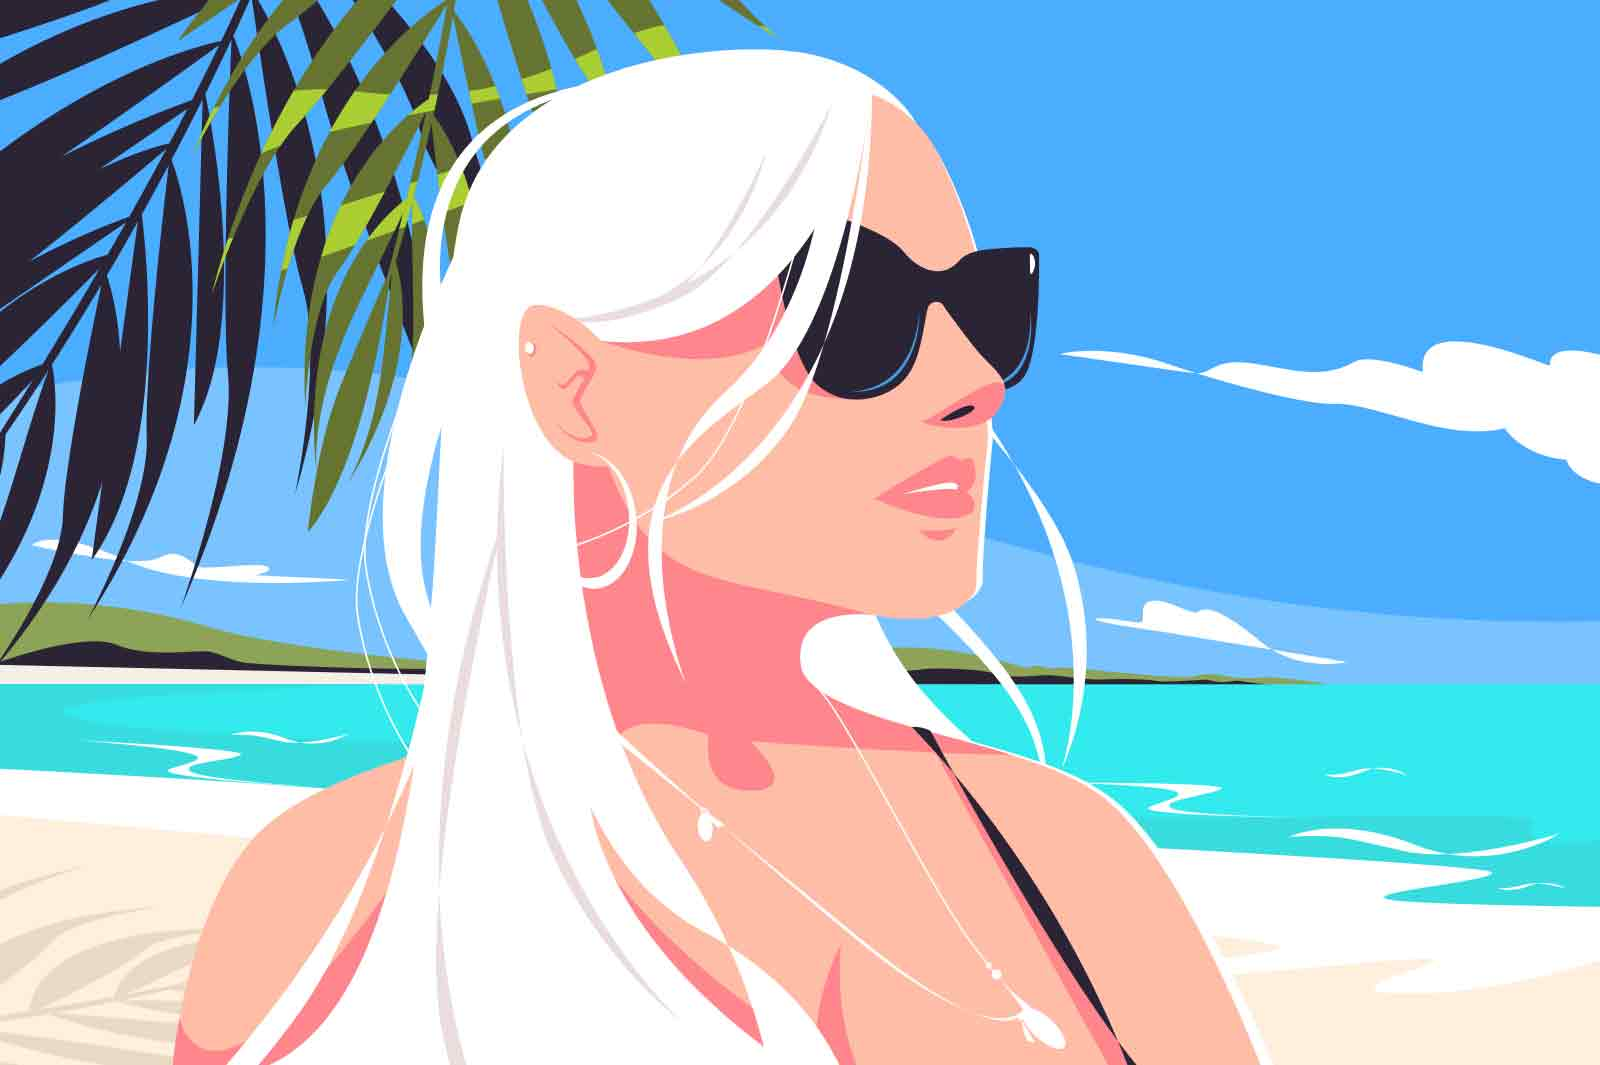 Blonde girl relax on beach vector illustration. Hot summer landscape flat style. Female in sunglasses on holiday in tropics. Vacation, relaxation and tourism concept. Ocean and sand on background